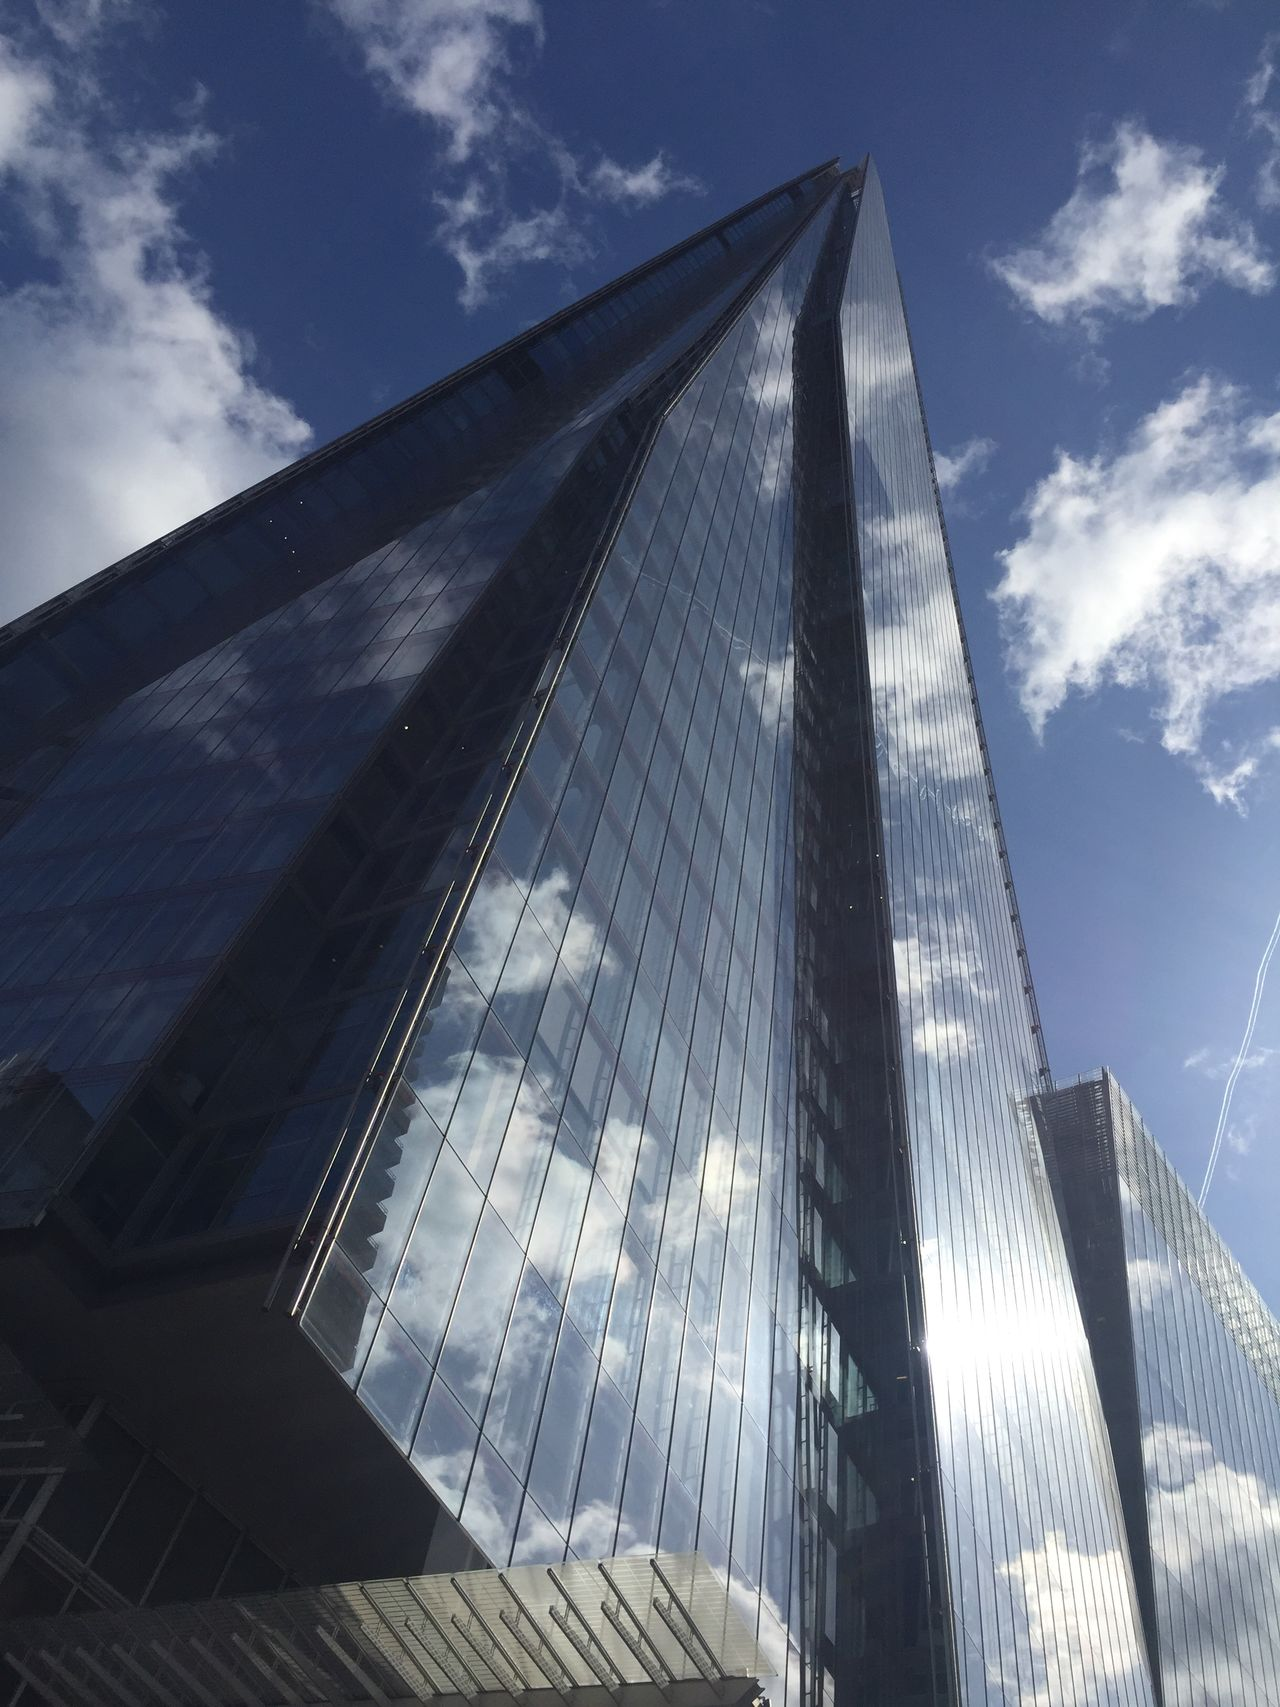 The shard cloud reflection Shard Shard London Bridge Shard London London Skyscraper Clouds Reflection Development Building Exterior Glass Blue Sky Mirror Pyramid Reflctions Modern Modern Architecture Architecture Uk